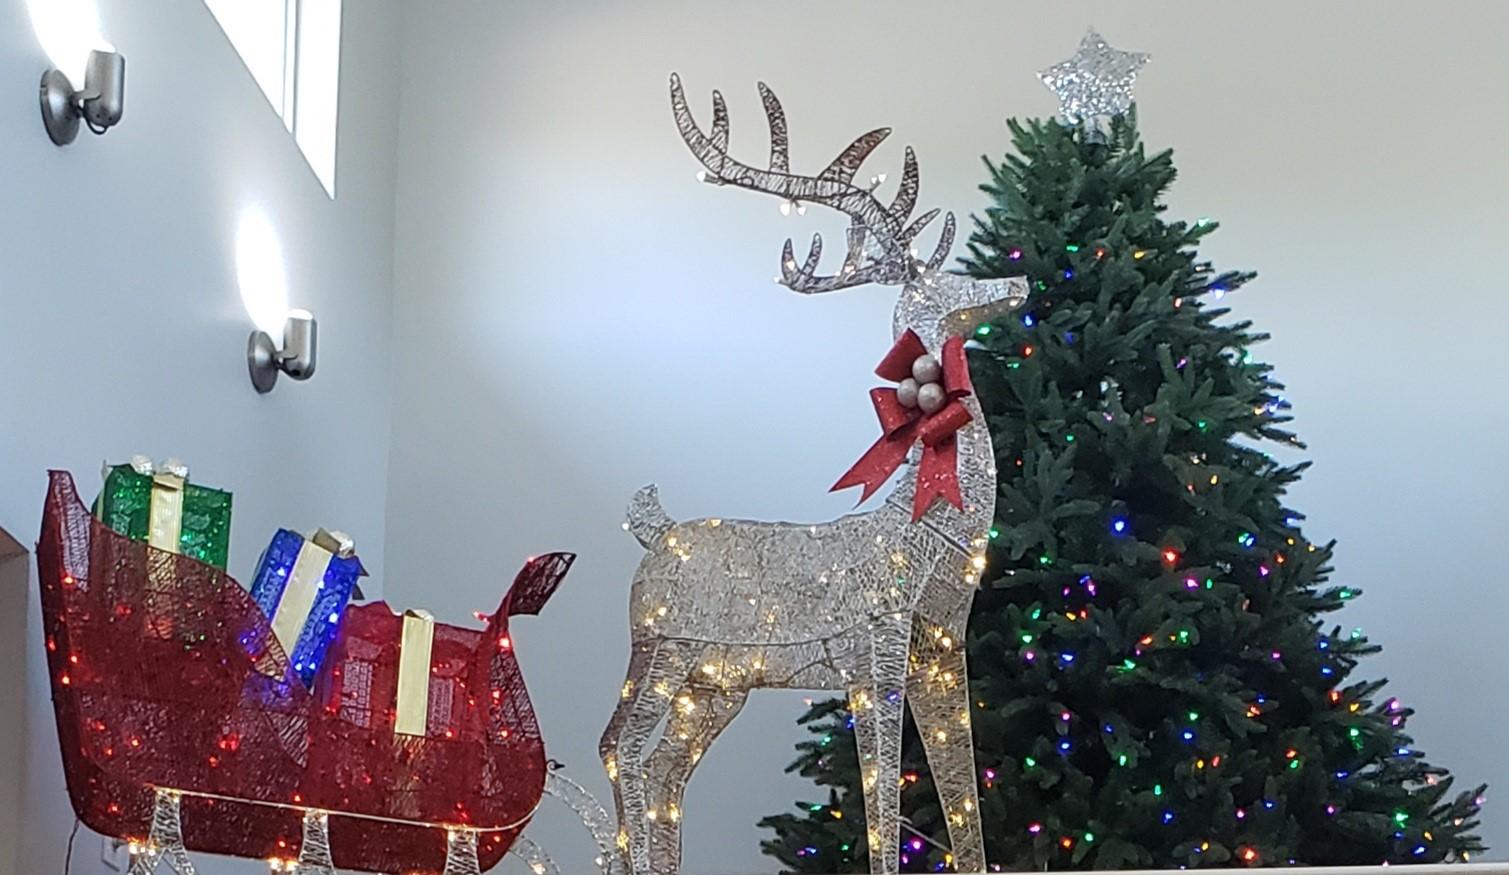 Inside Clubhouse with Christmas Tree and decorations